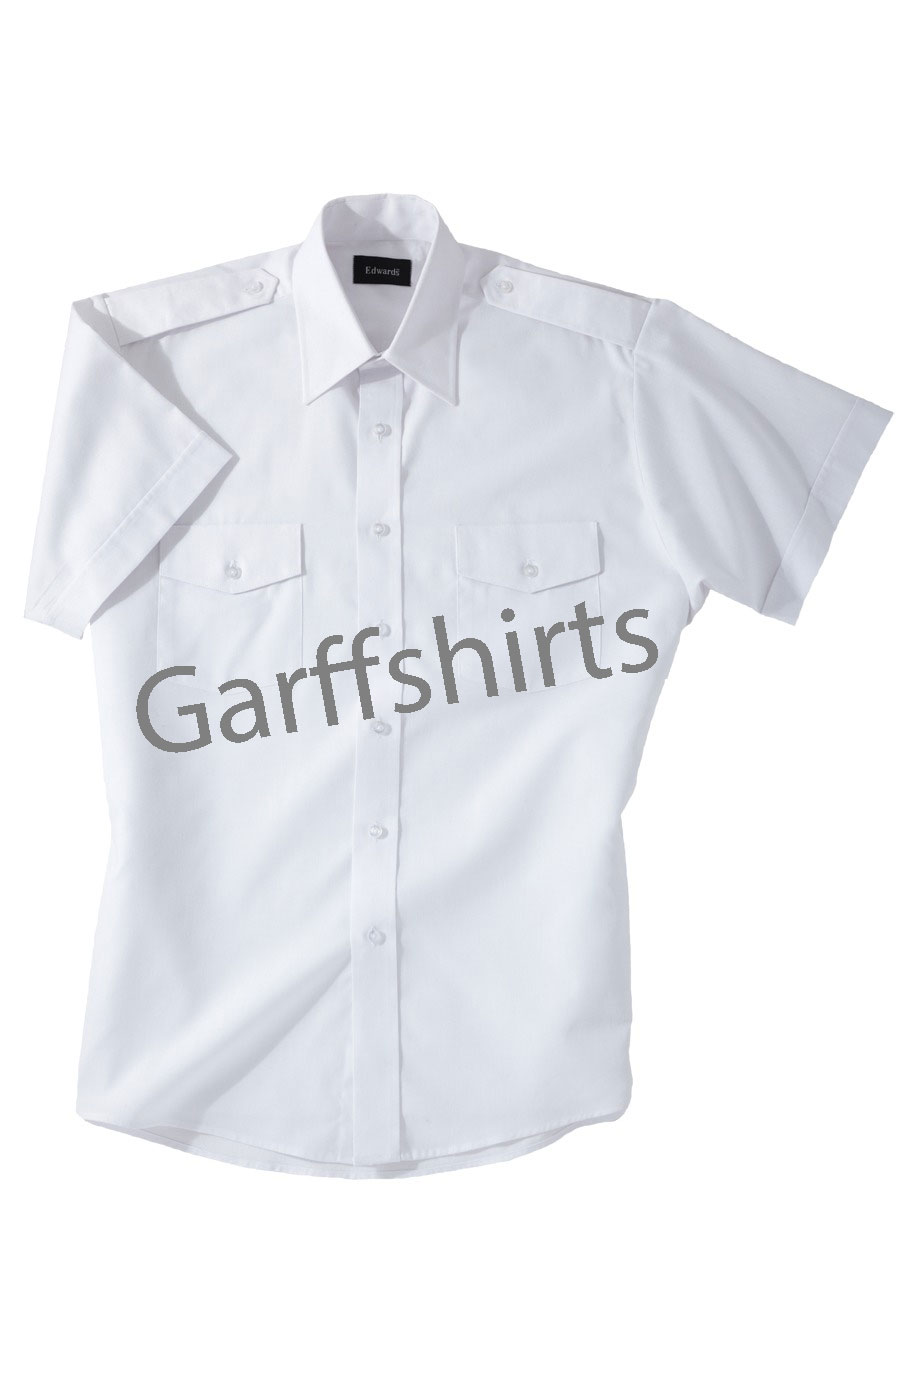 Edwards Pilot Uniform Shirts - Edwards Navigator Uniform Shirts - Long and Short Sleeve White Pilot Uniform Shirts